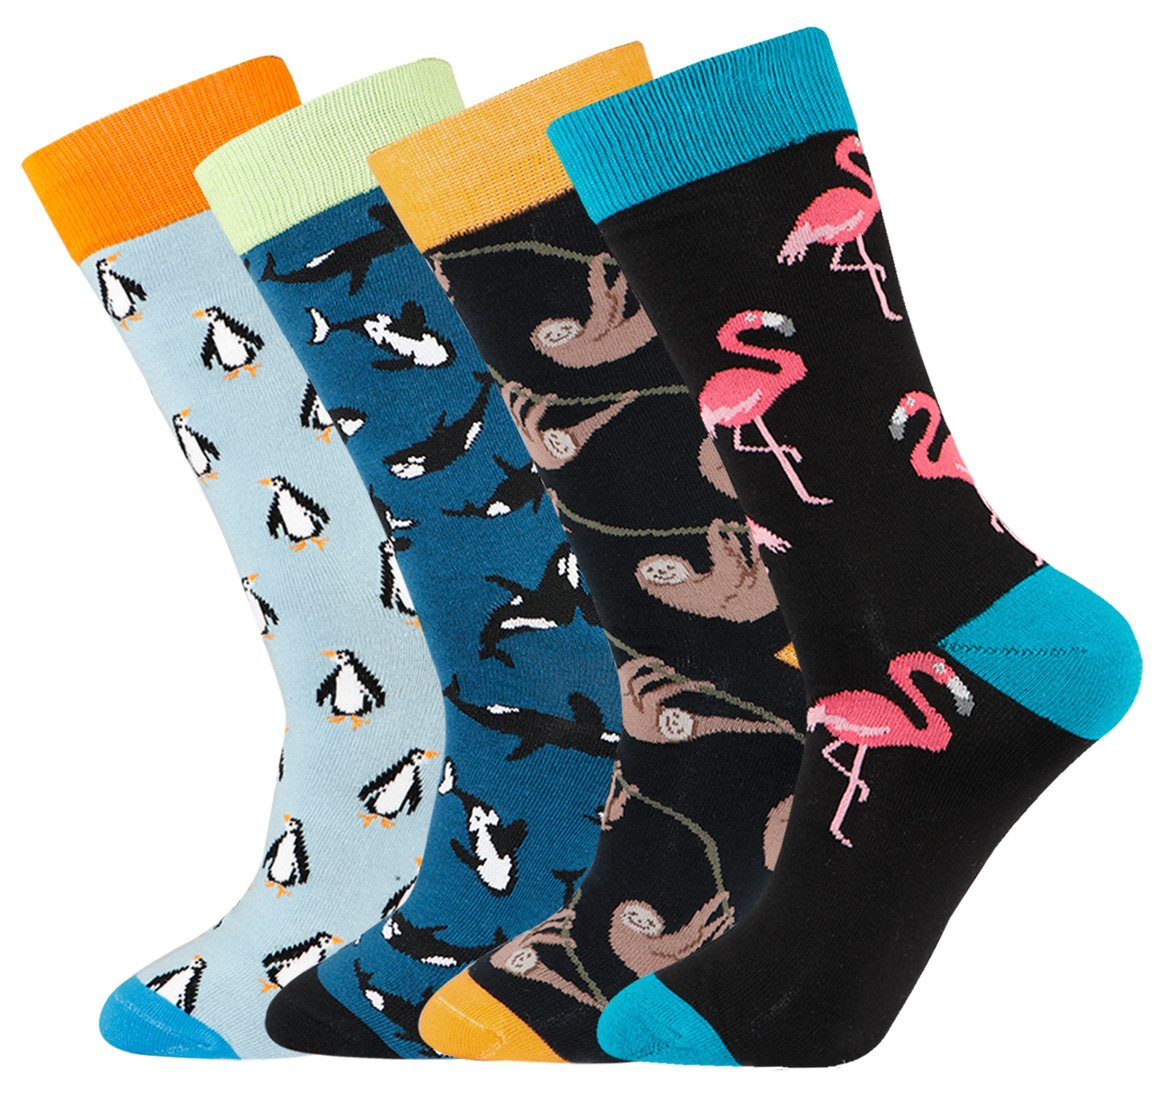 Men's Fun Penguin Animal Patterned Casual Cotton Crew Socks 4 Pairs